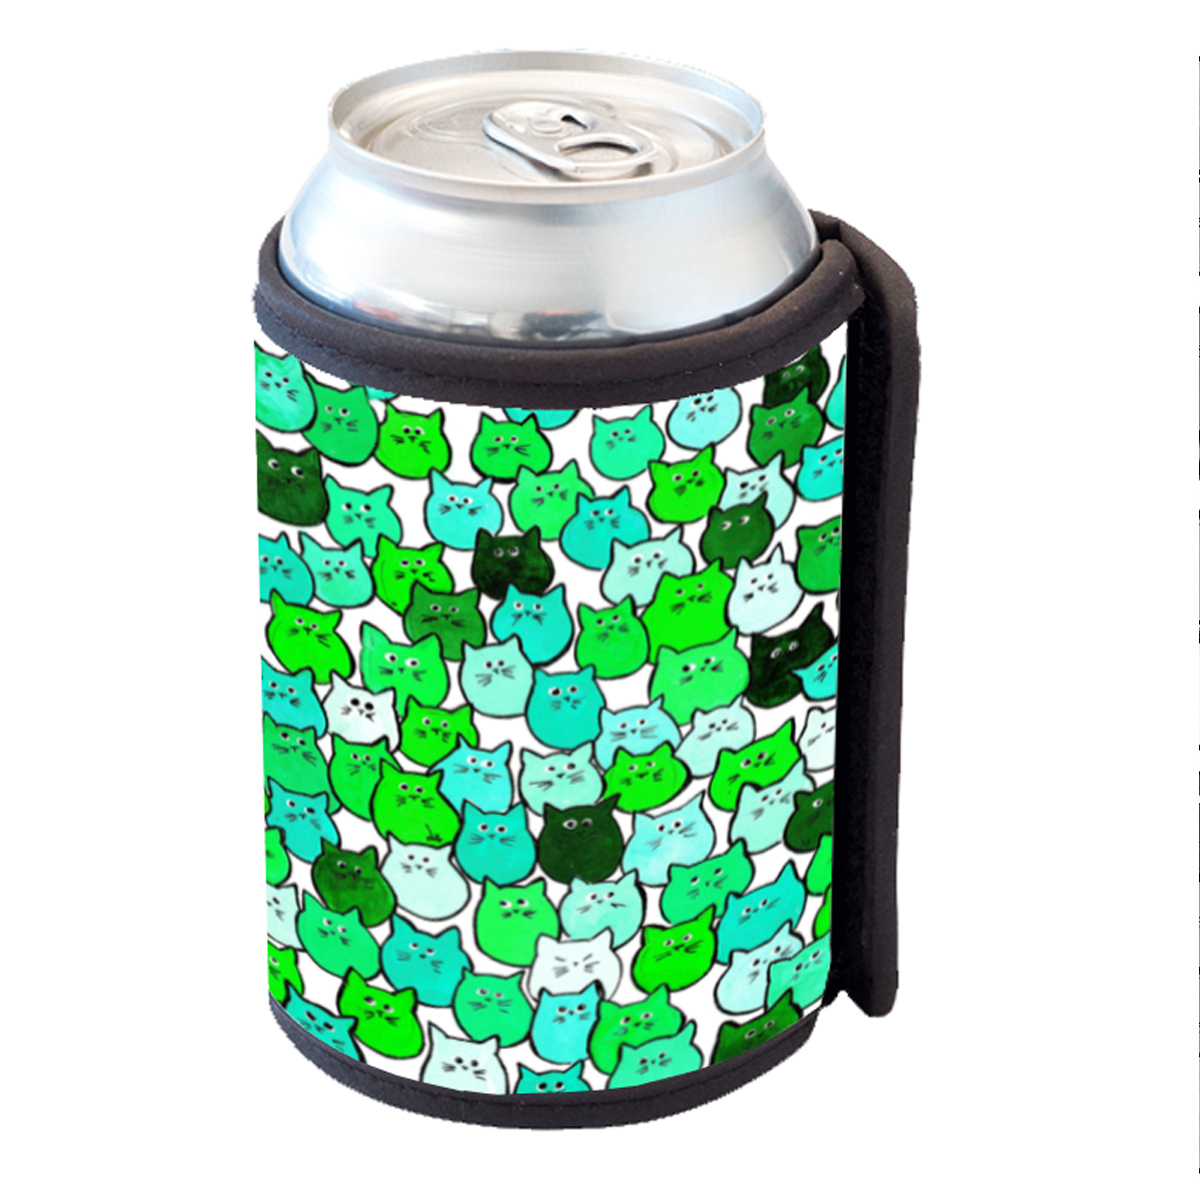 KuzmarK Insulated Drink Can Cooler Hugger - Very Green Tiny Chubby Kitties Art by Denise Every